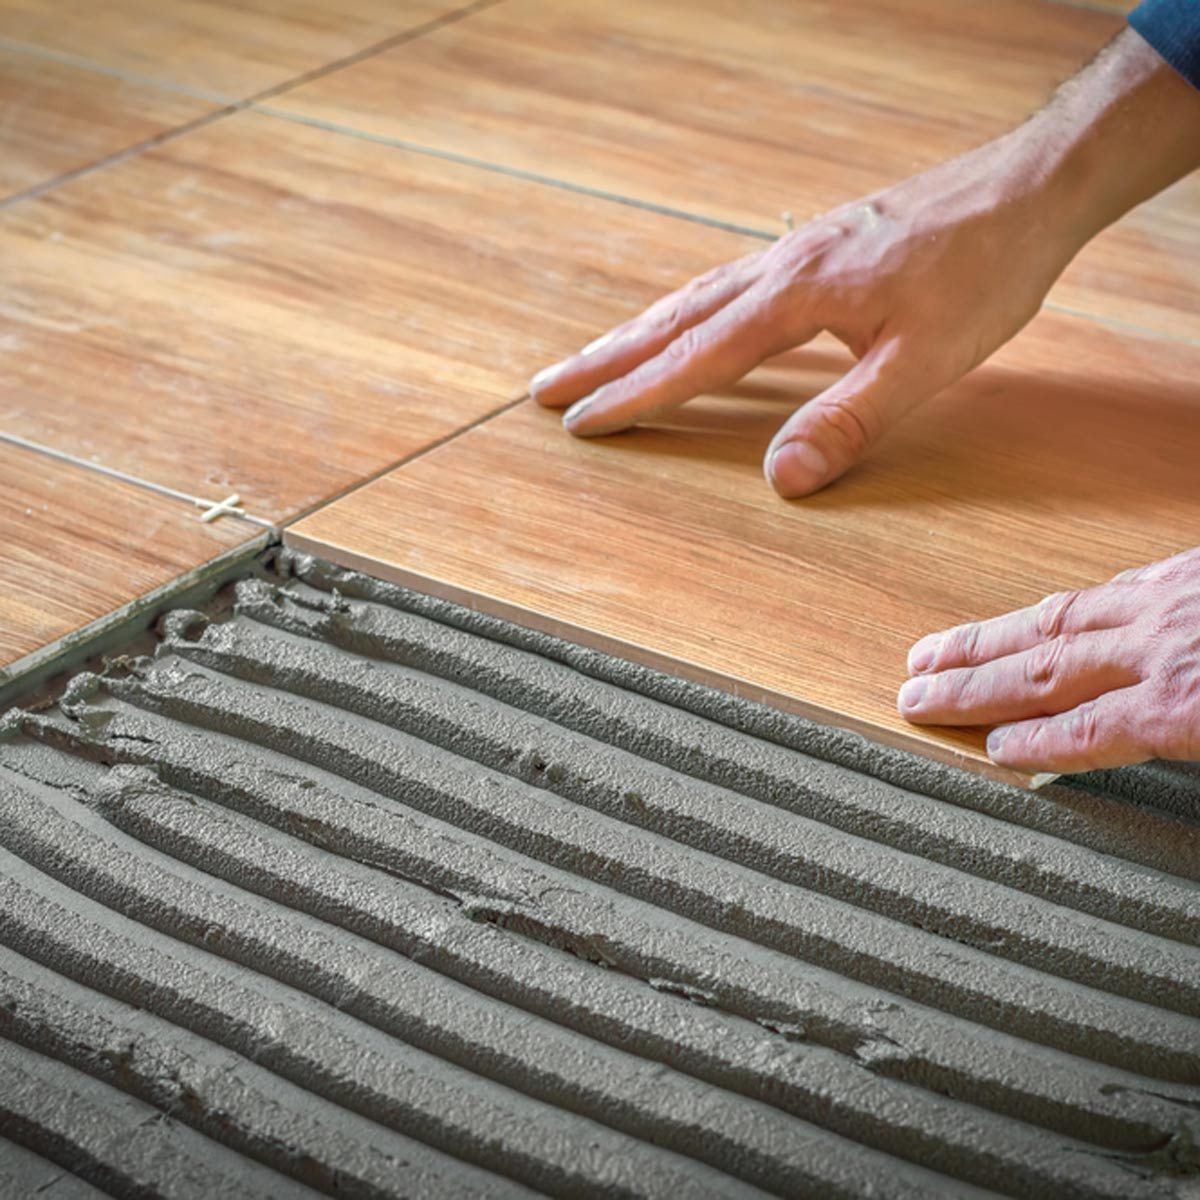 Inexpensive Flooring Options | The Family Handyman